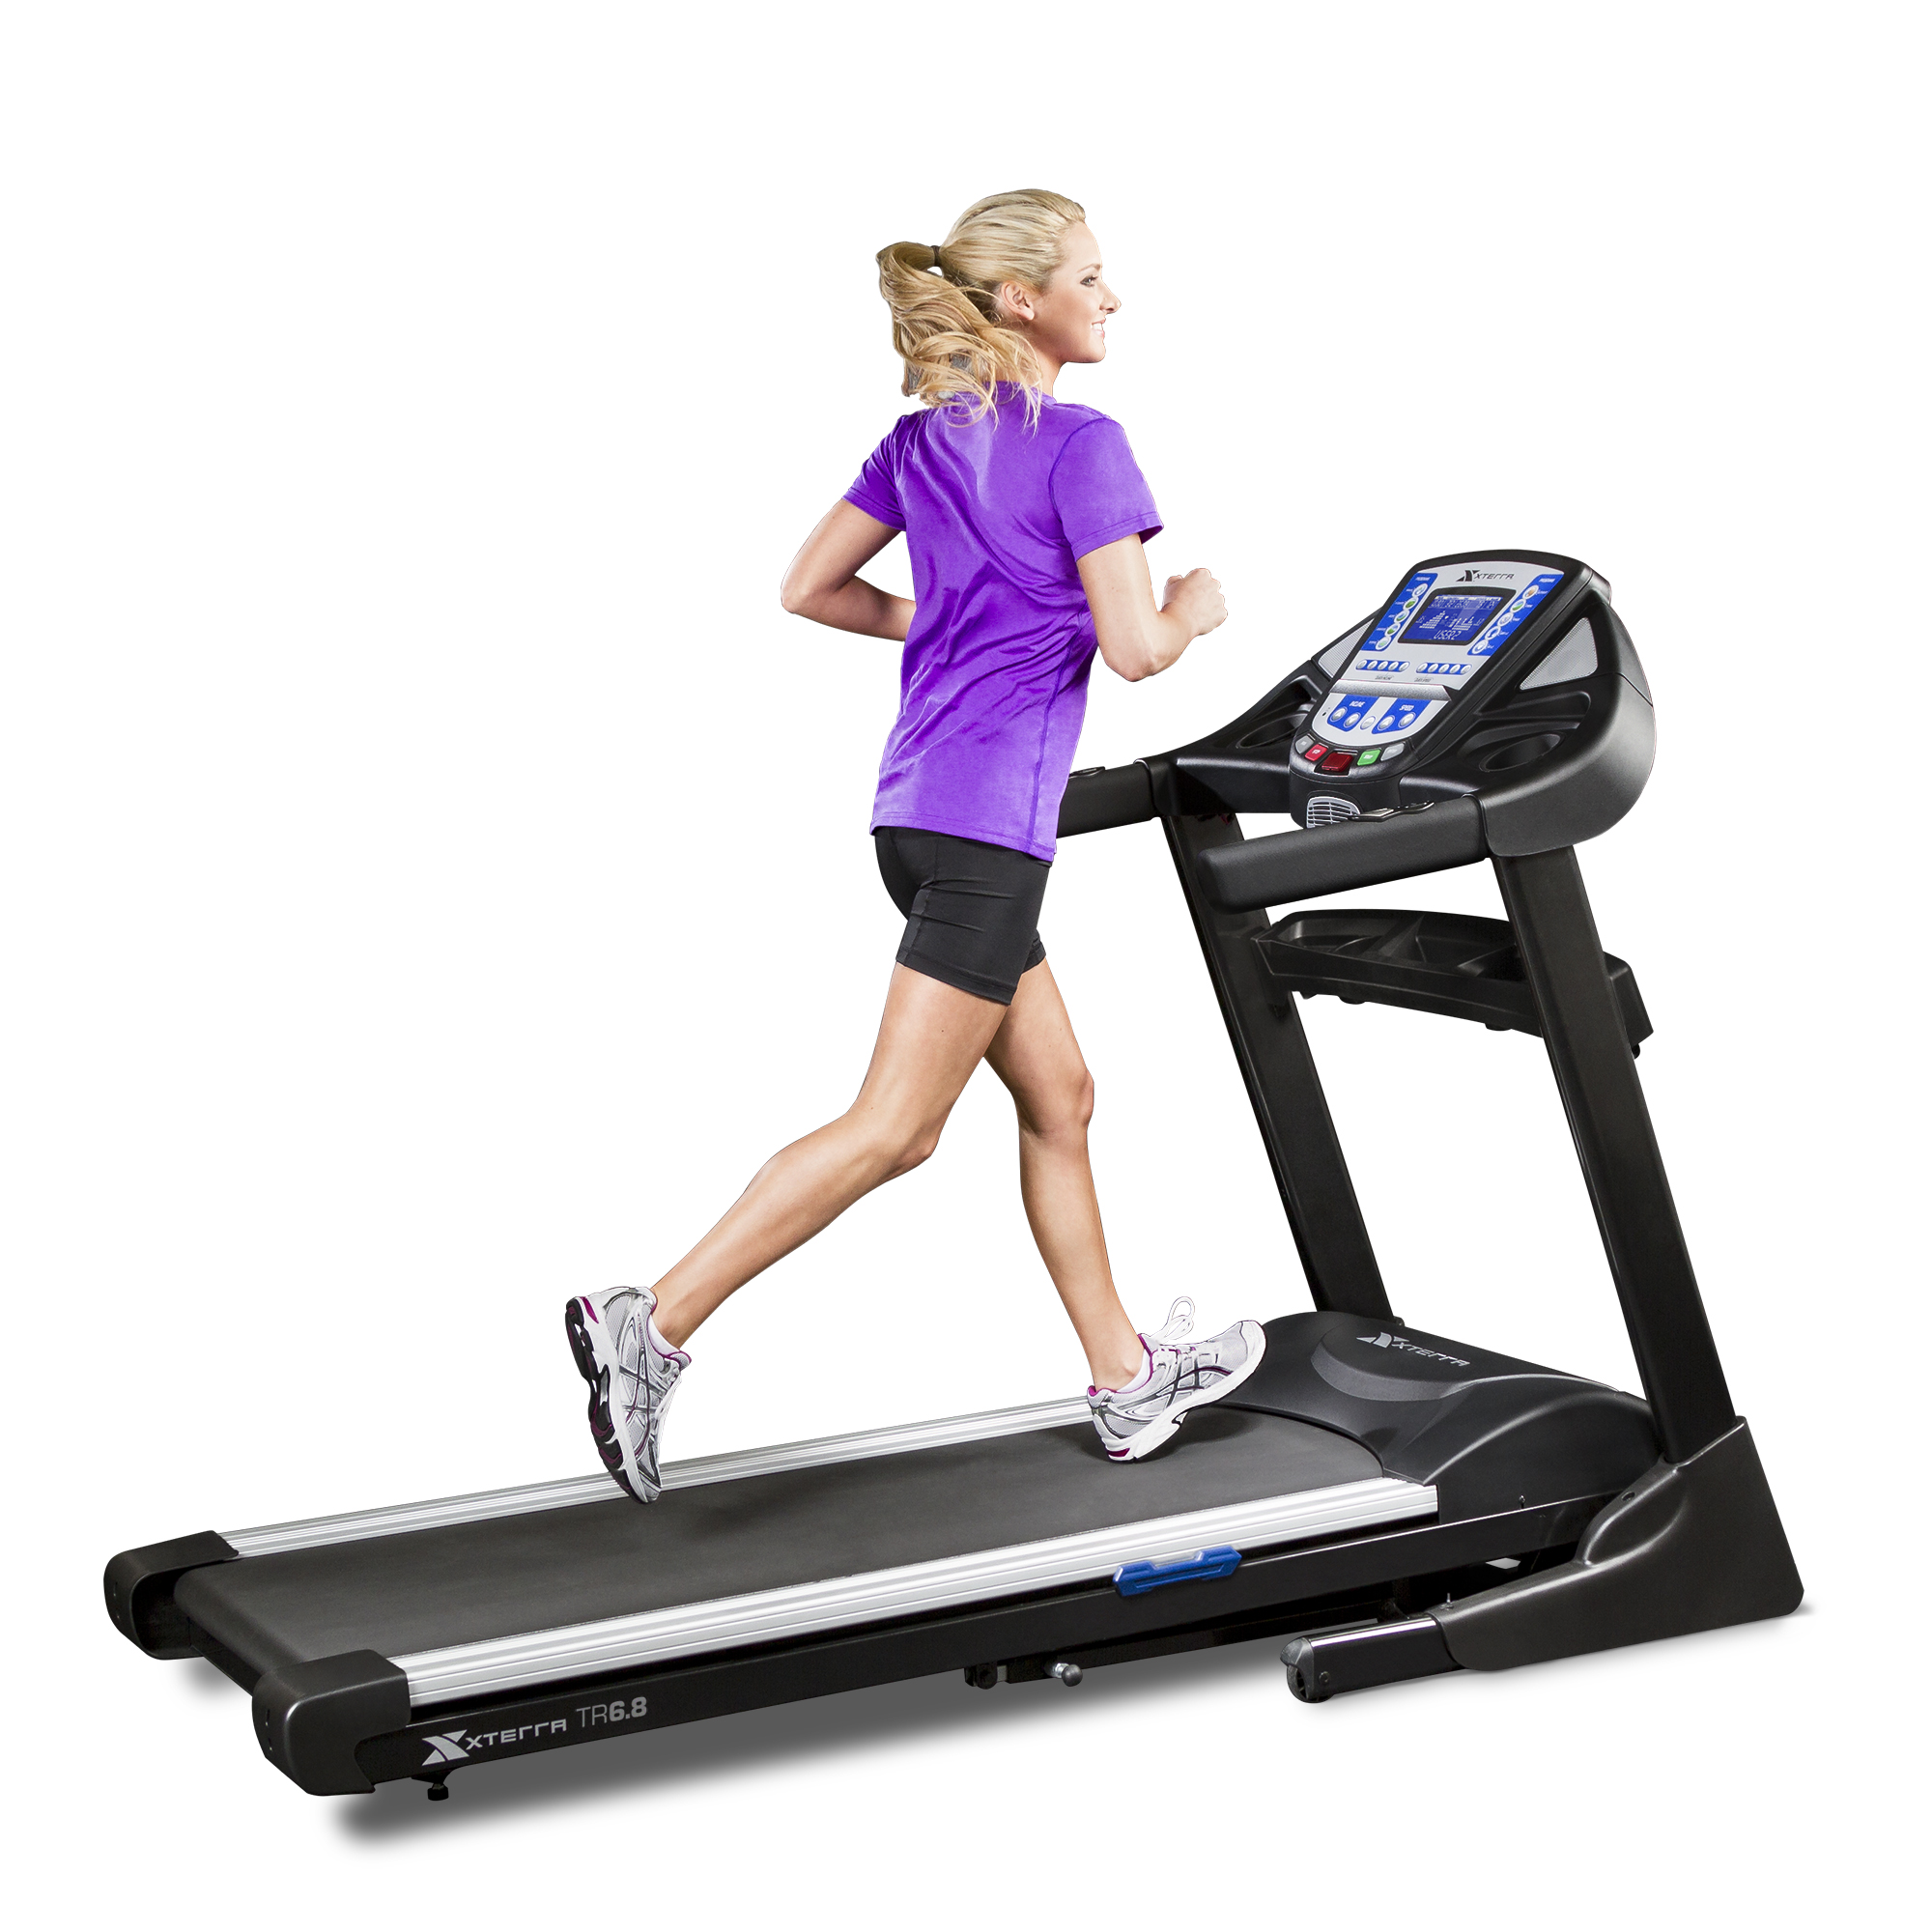 XTERRA Fitness TR6.8 Folding Treadmill with Heart Rate Chest Strap